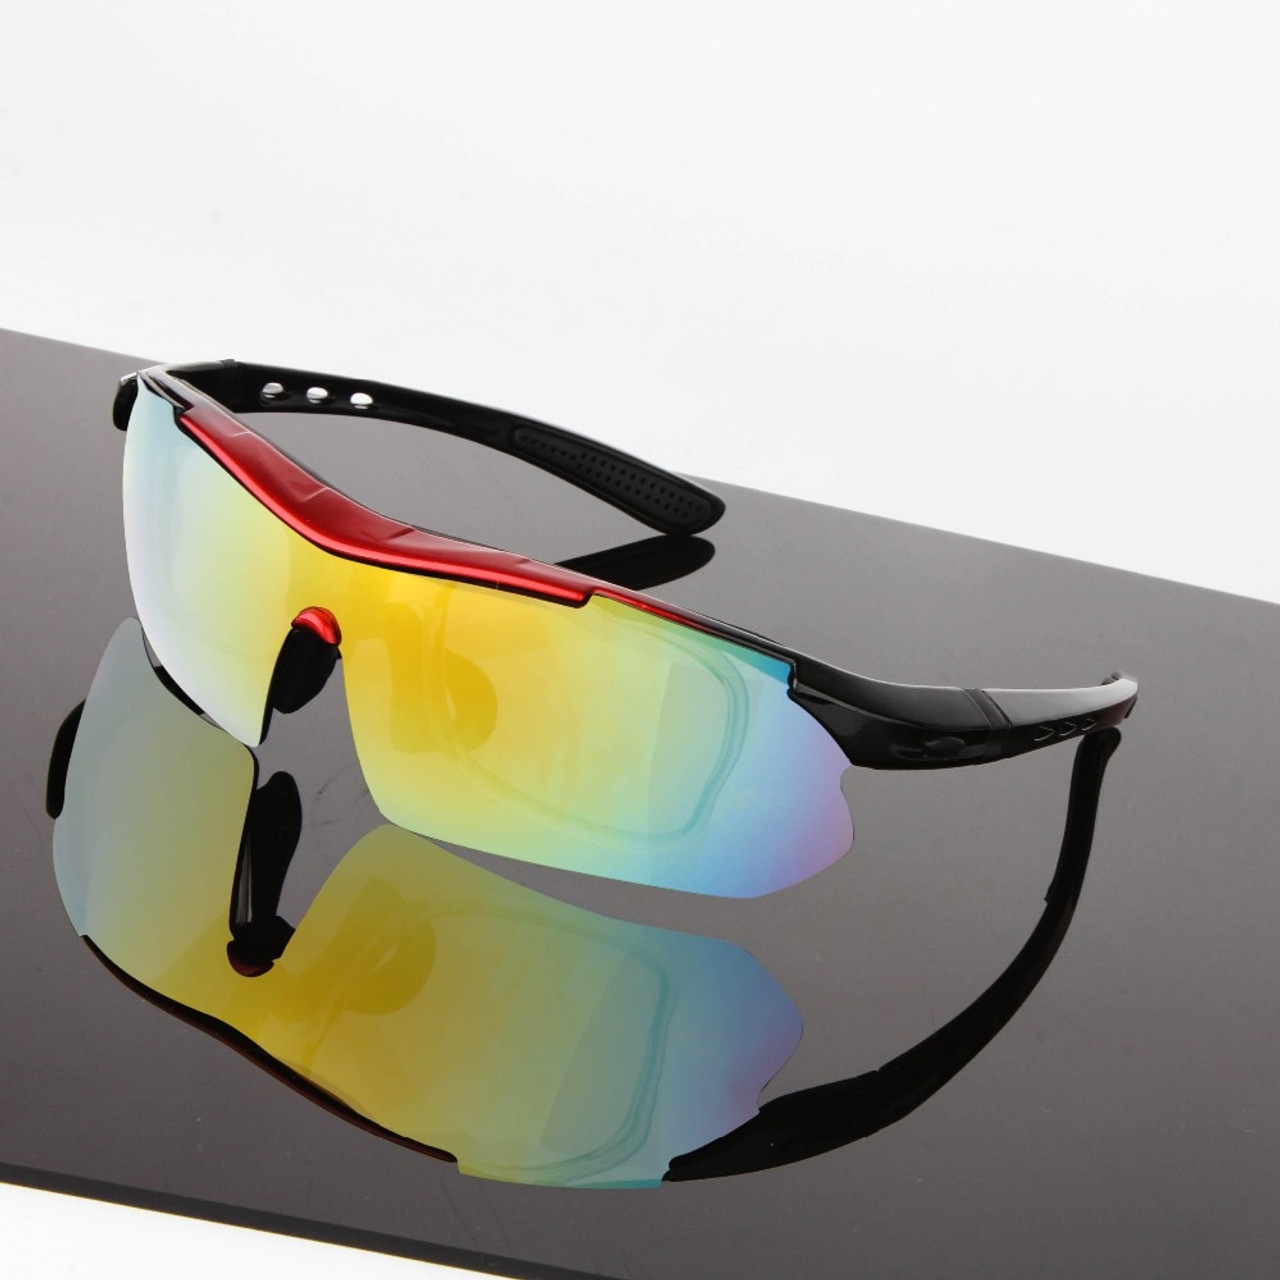 f5cd1486669 ... 2018 Polarized Cycling Glasses Bike Outdoor Sports Bicycle Sunglasses  For Men Women Goggles Eyewear 5 Lens ...